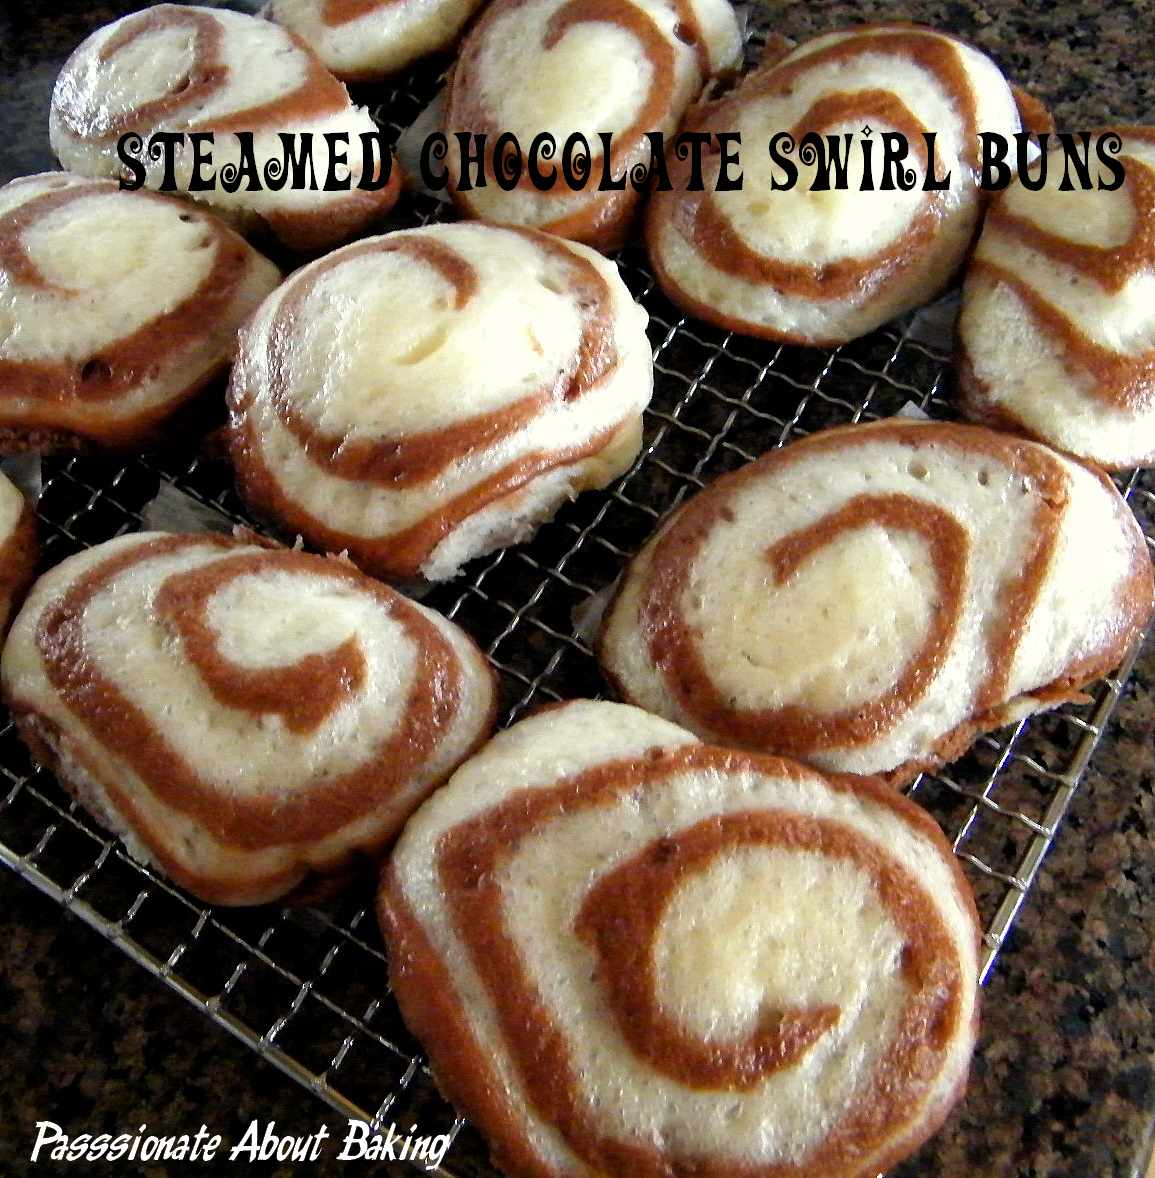 Steamed Chocolate Swirl Buns | Passionate About Baking